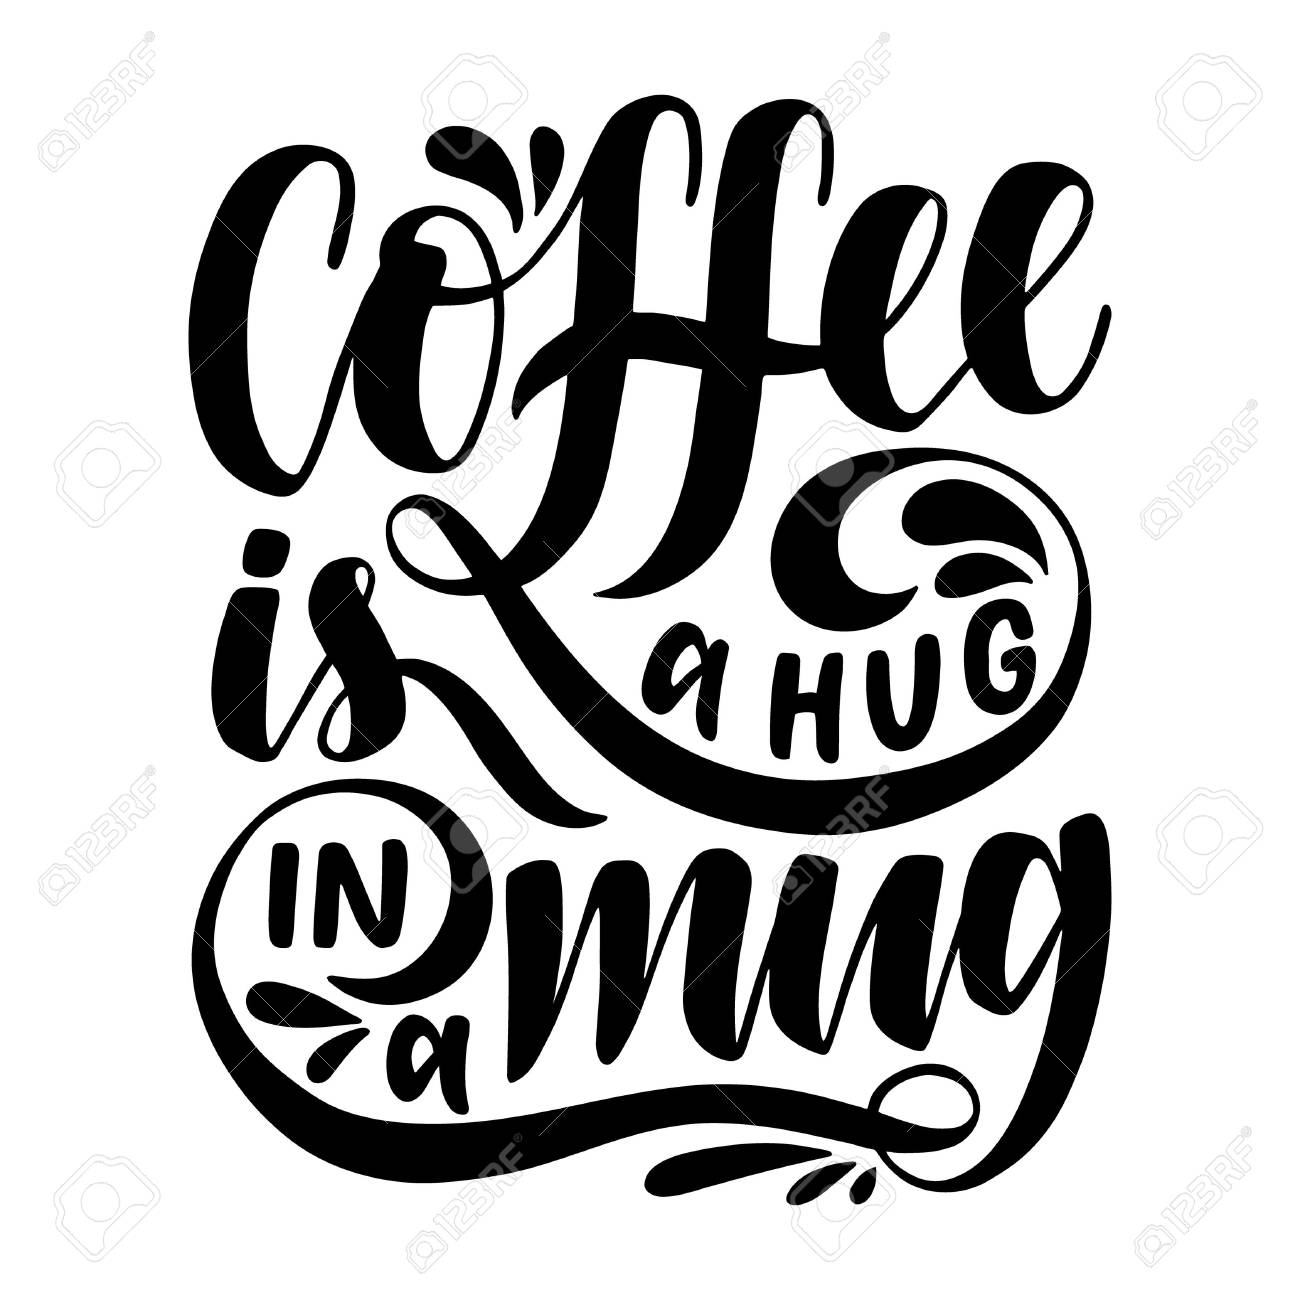 Coffee Is A Hug In A Mugspirational Quotehand Drawn Poster